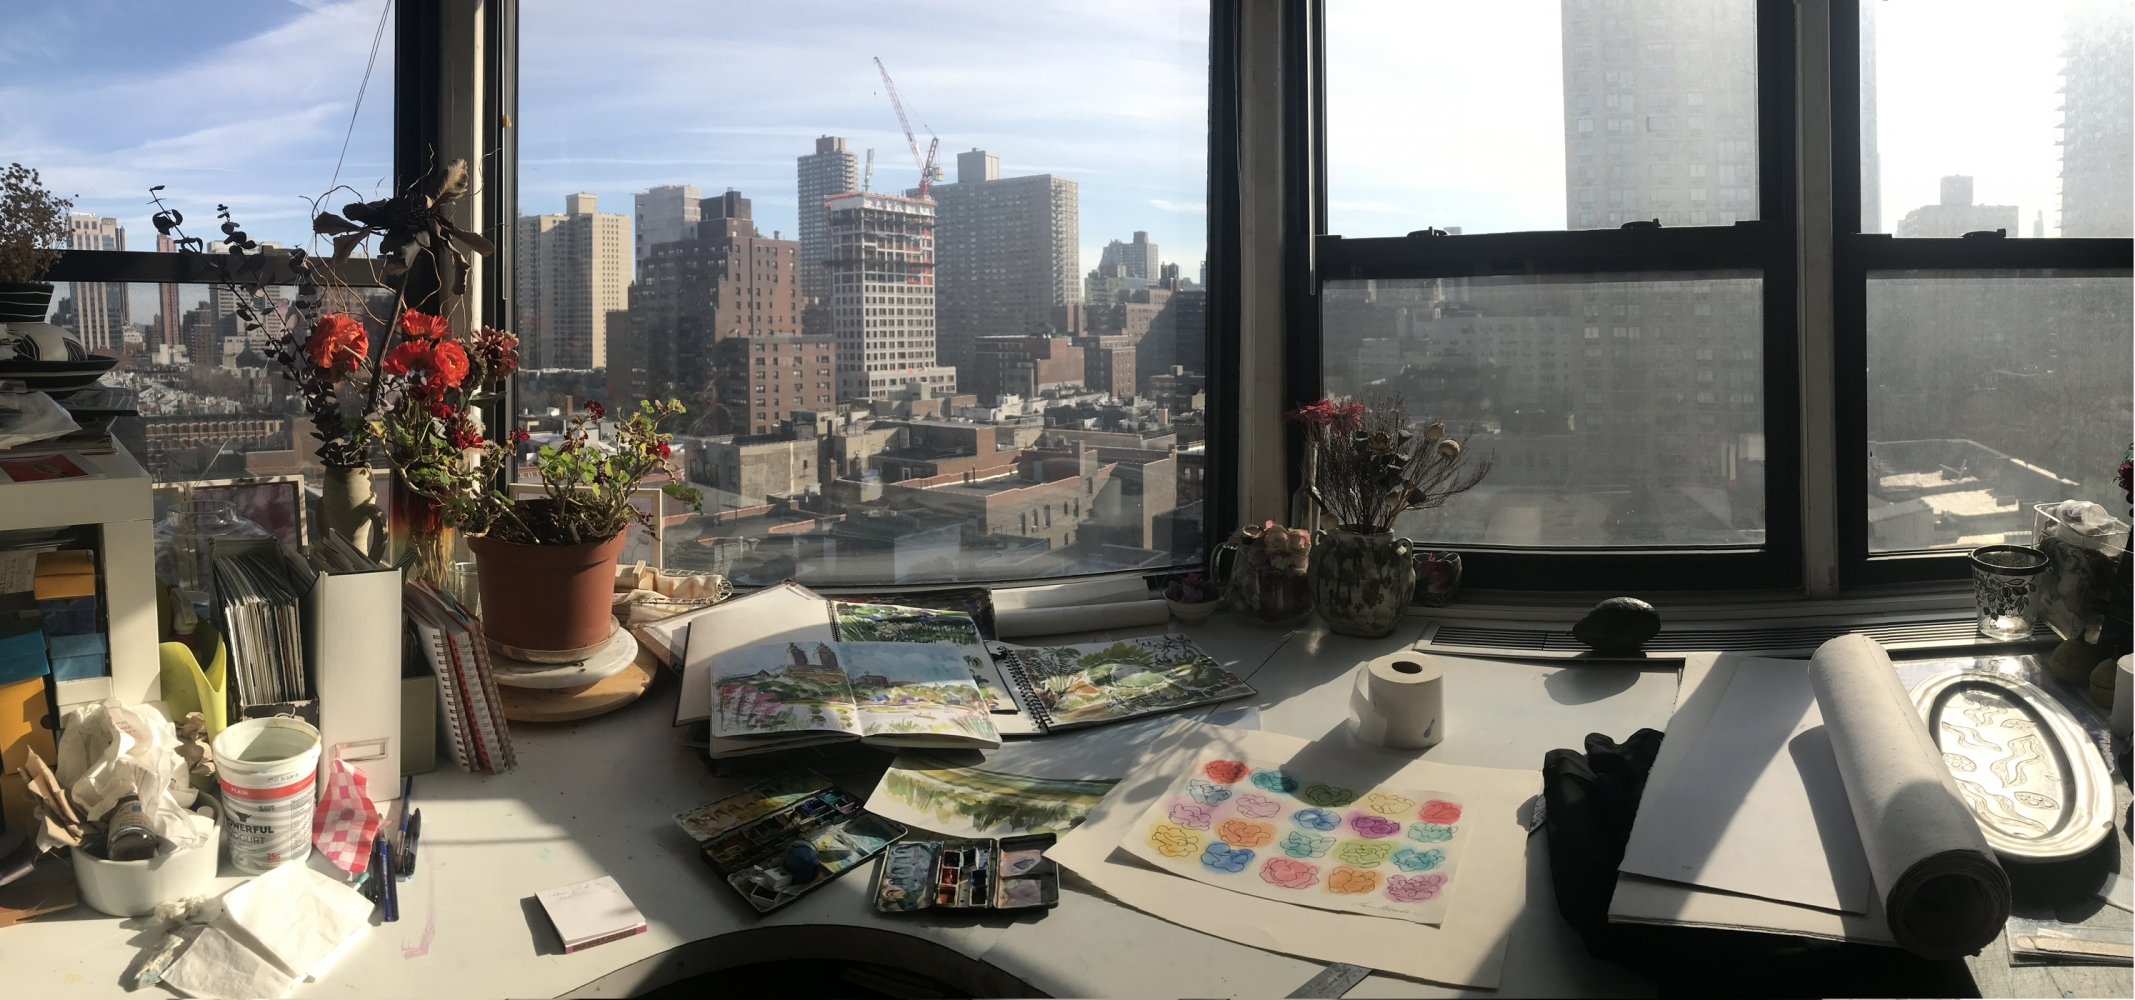 View Image Details My Studio Panoramic View